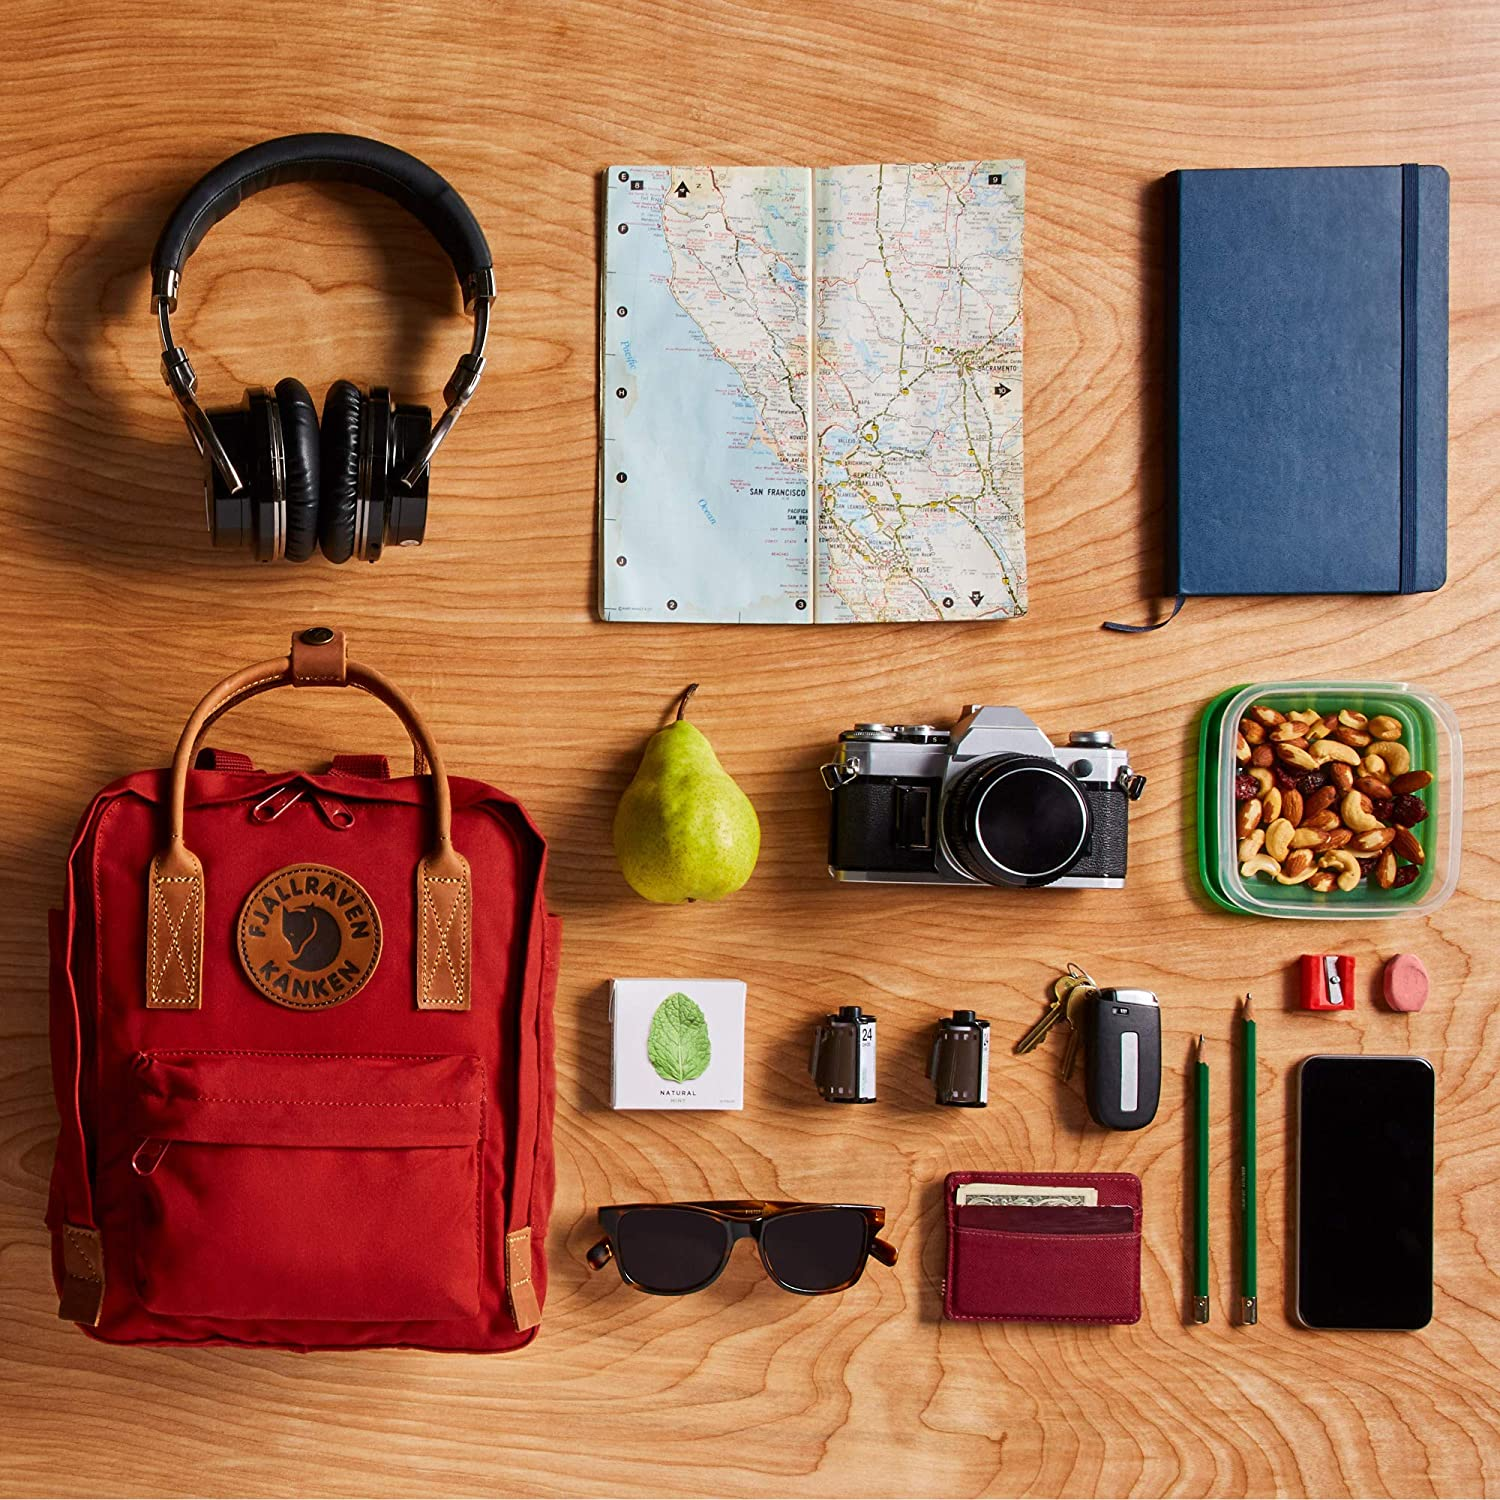 Fjallraven 2 Mini Backpack for Everyday Use and Travel Kanken No